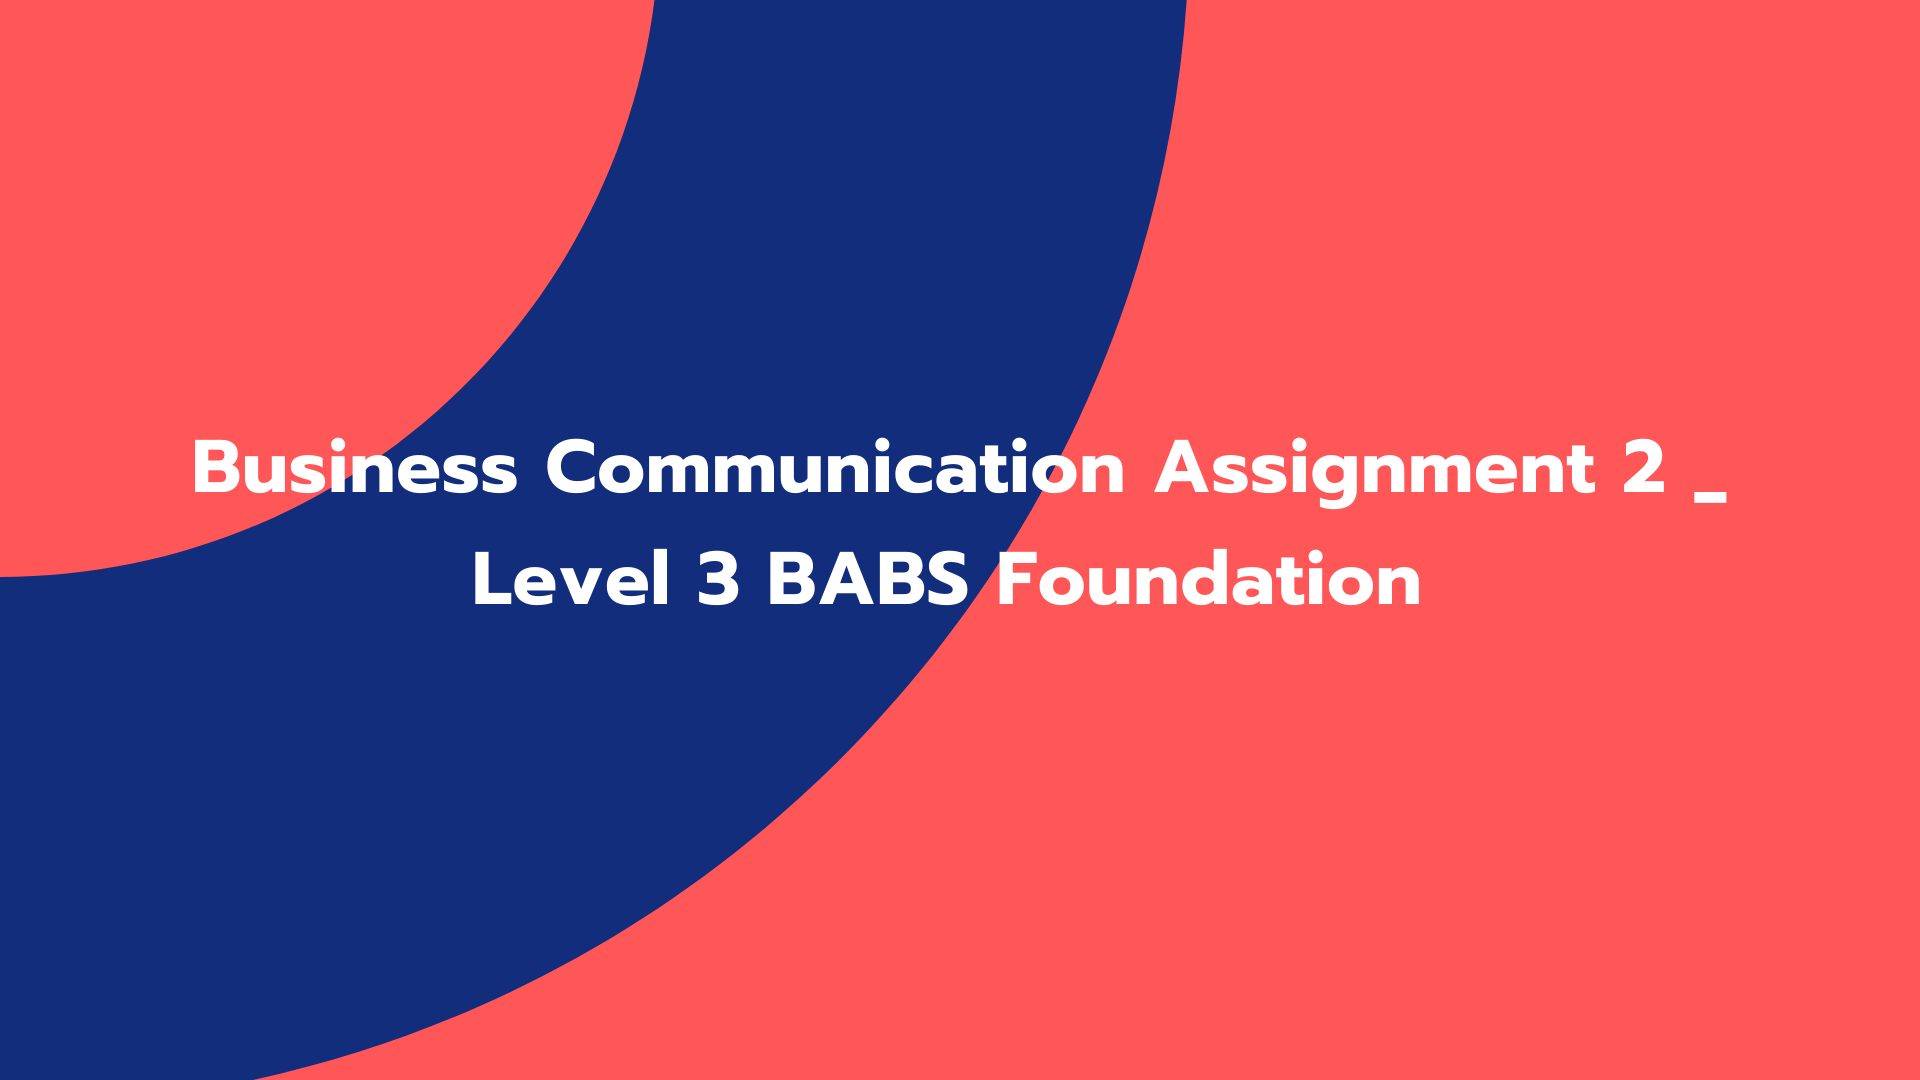 Business Communication Assignment 2 _ Level 3 BABS Foundation